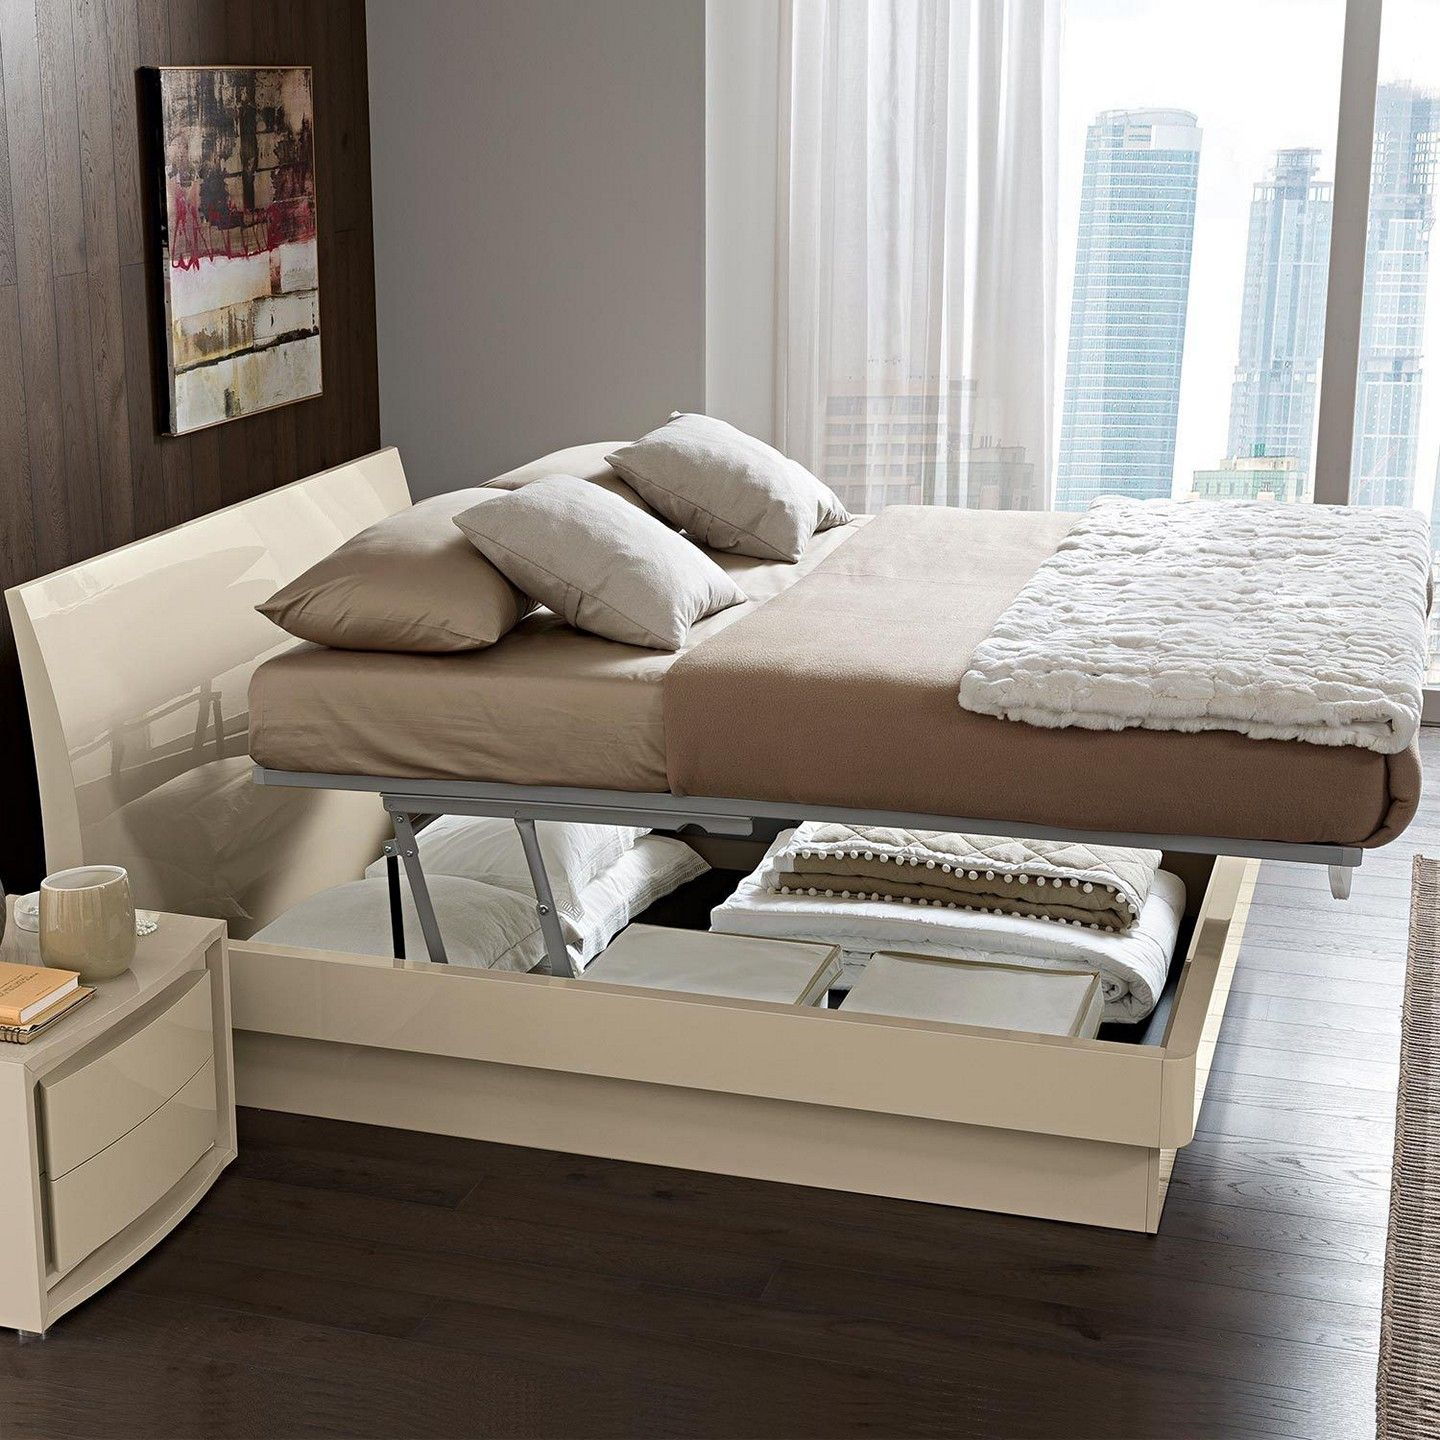 Small Bedroom Big Heart And Lots Of Storage: 100 Space Saving Small Bedroom Ideas